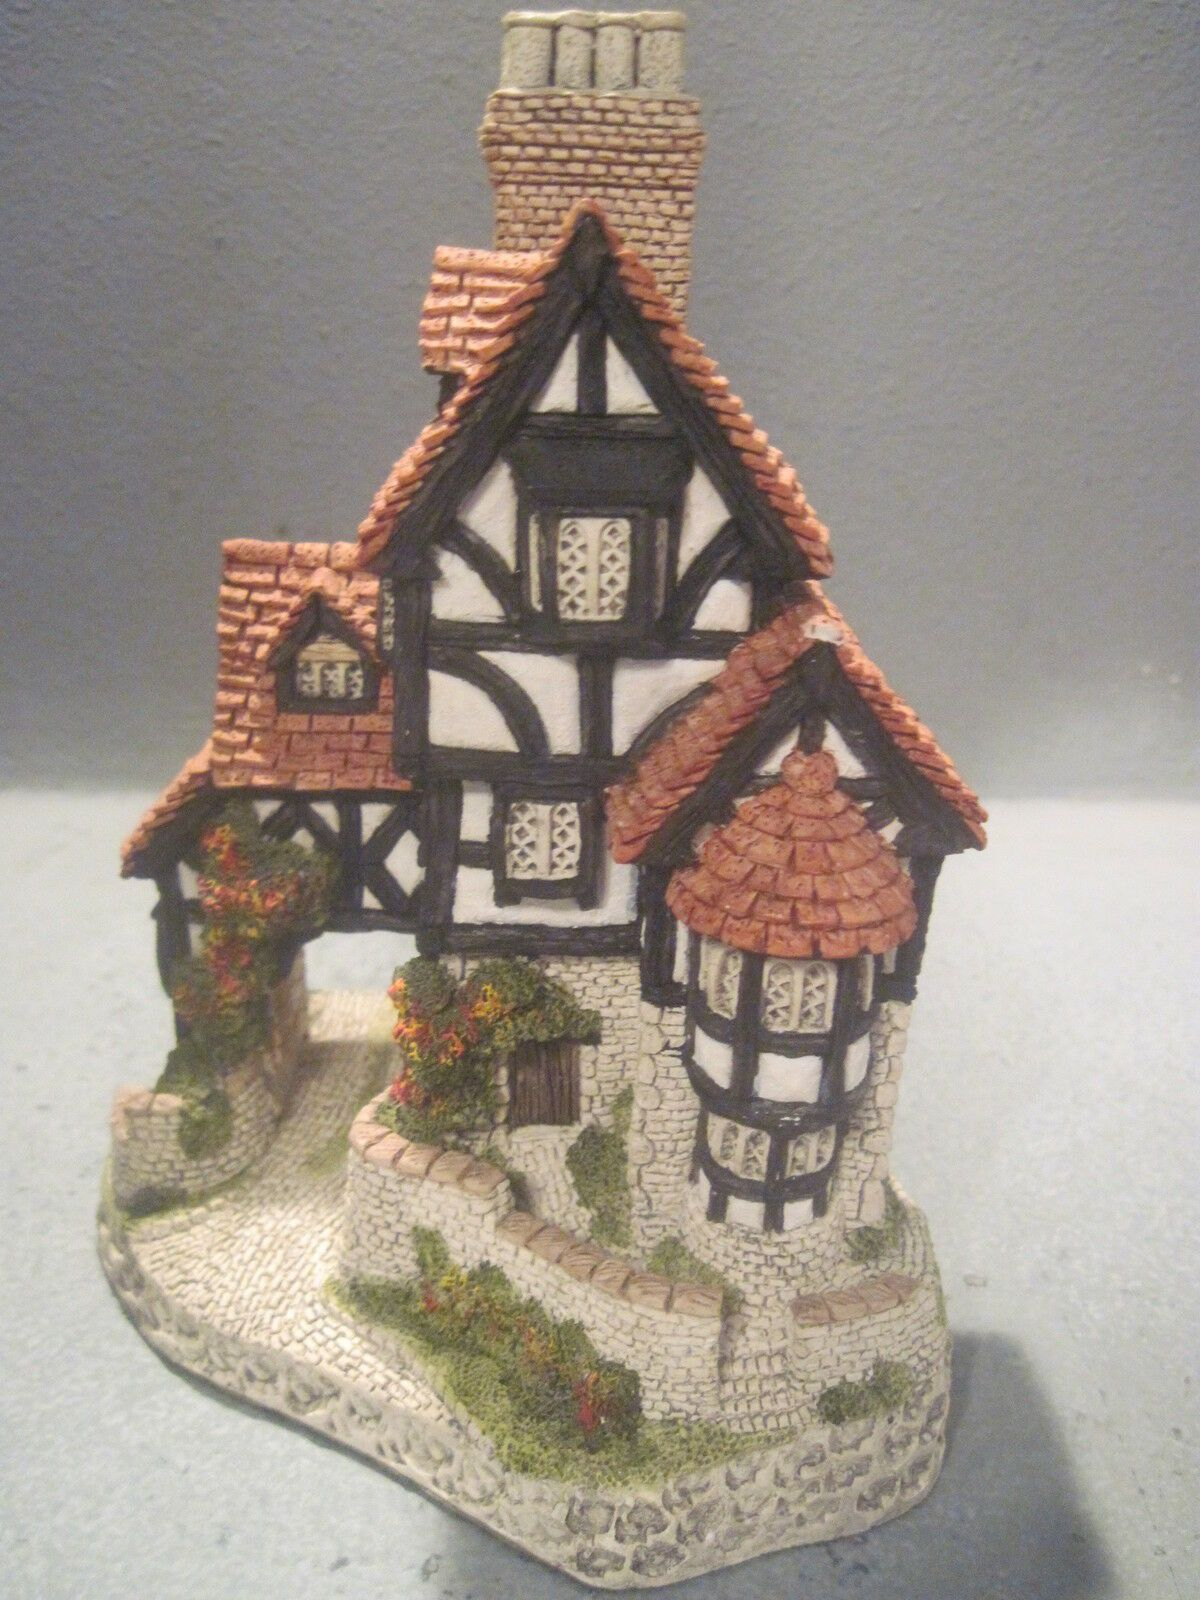 Squires Hall David Winter Cottages In The Original Box Ebay The Originals Original Box Cottage